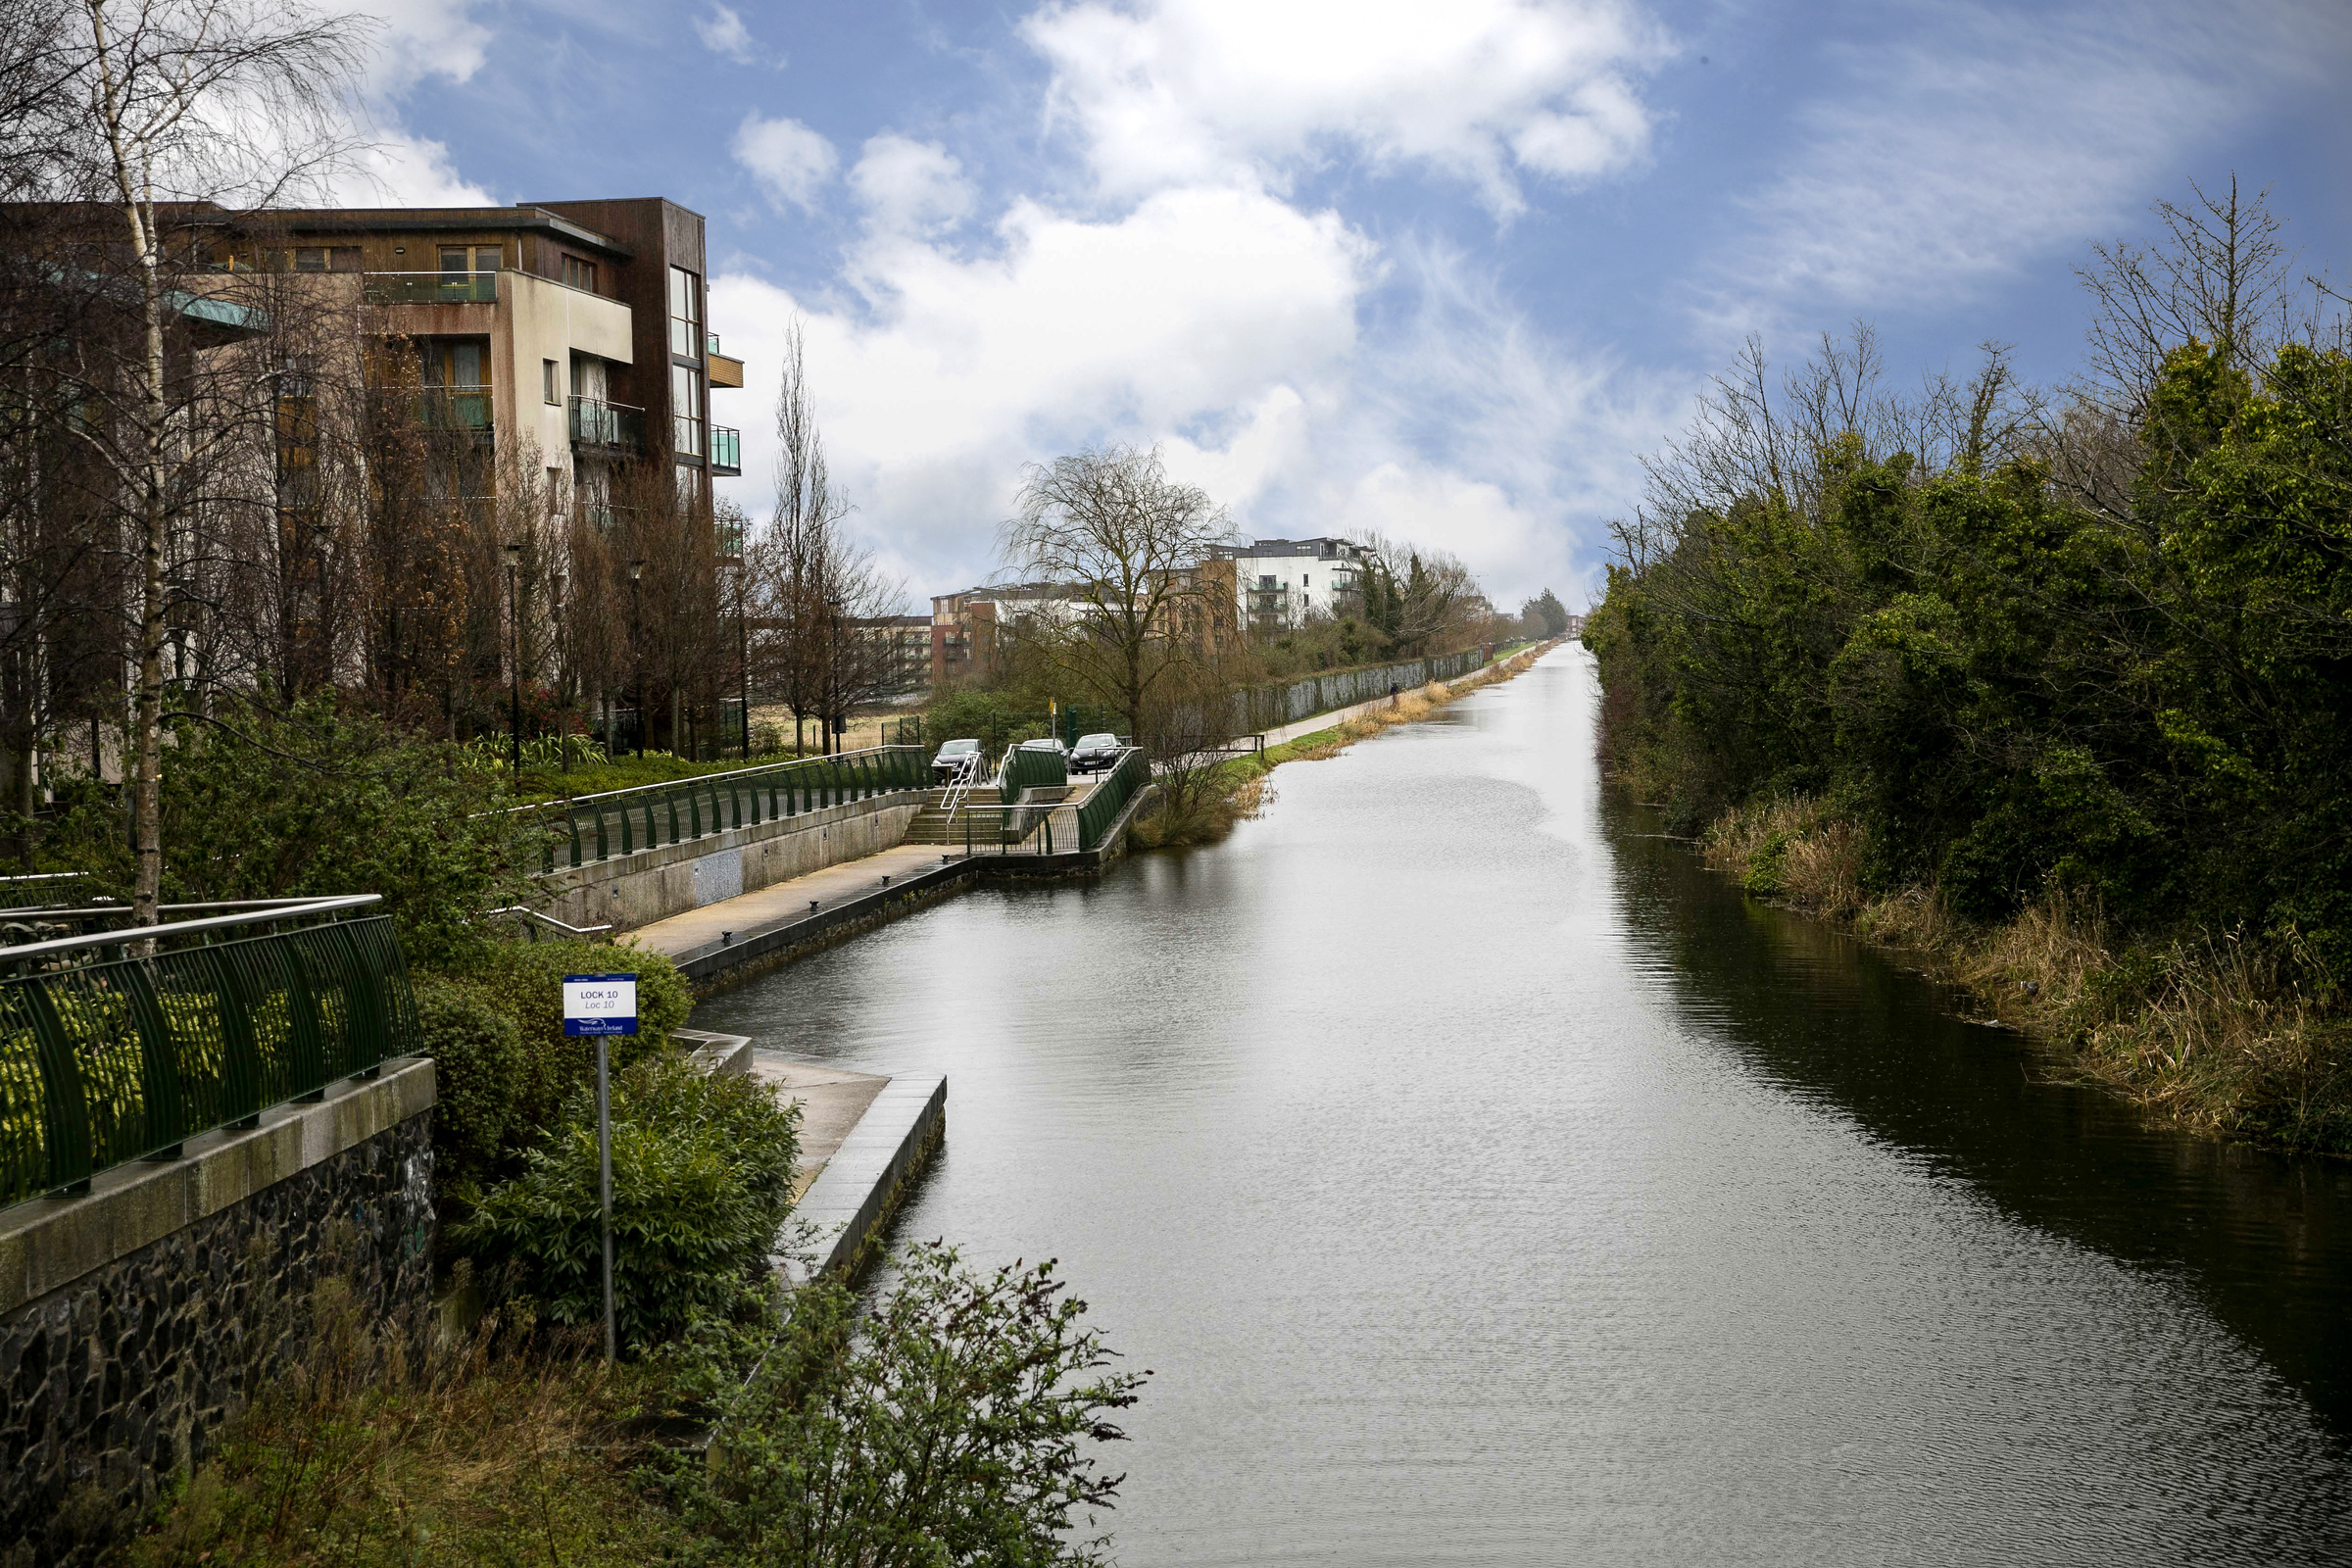 Apartment 52, Beacon, Ashtown, Dublin 15